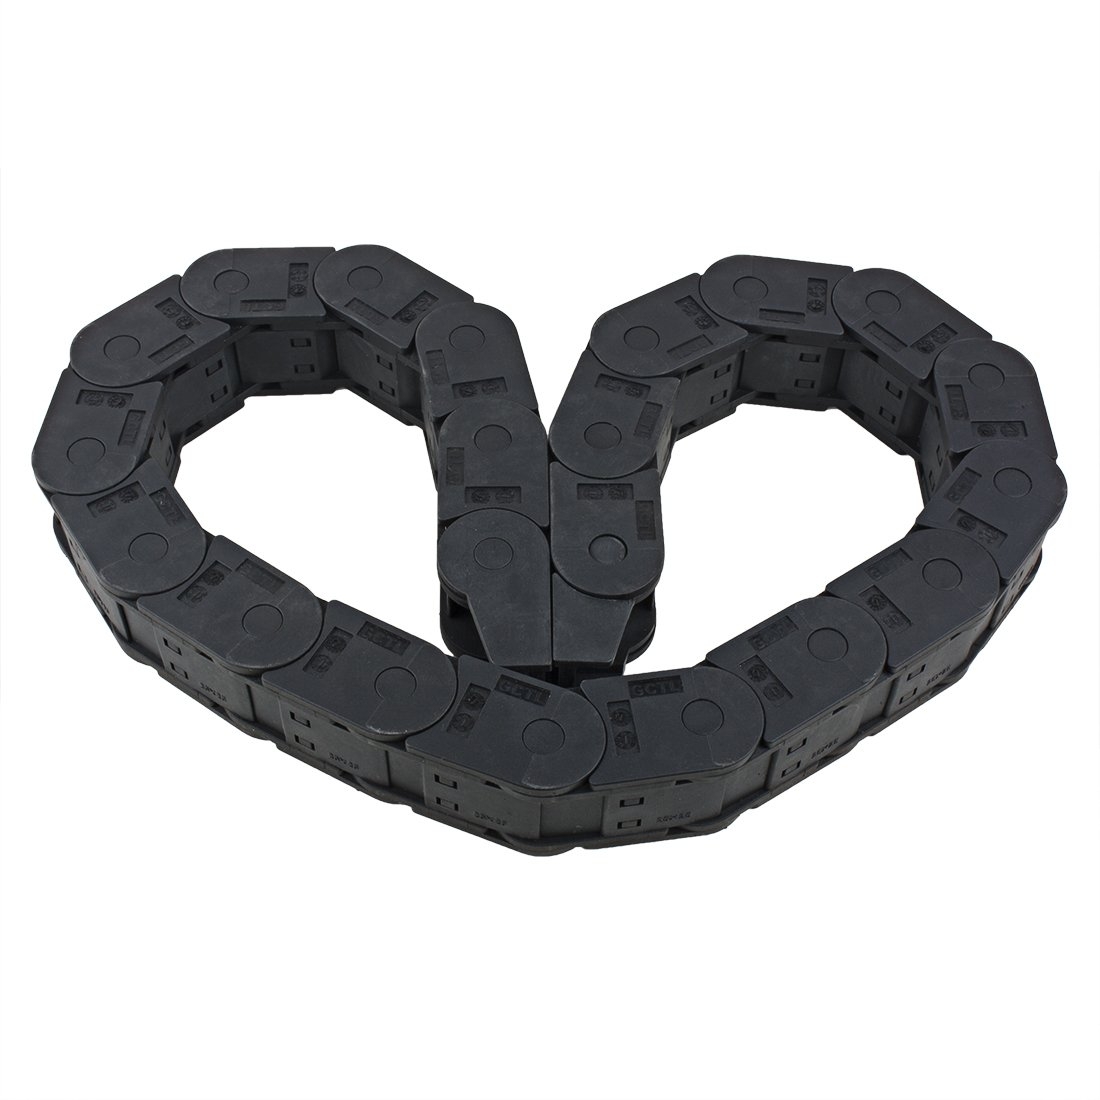 uxcell R18 10mm x 10mm Black Plastic Cable Wire Carrier Drag Chain 1M Length for CNC a16072900ux0337